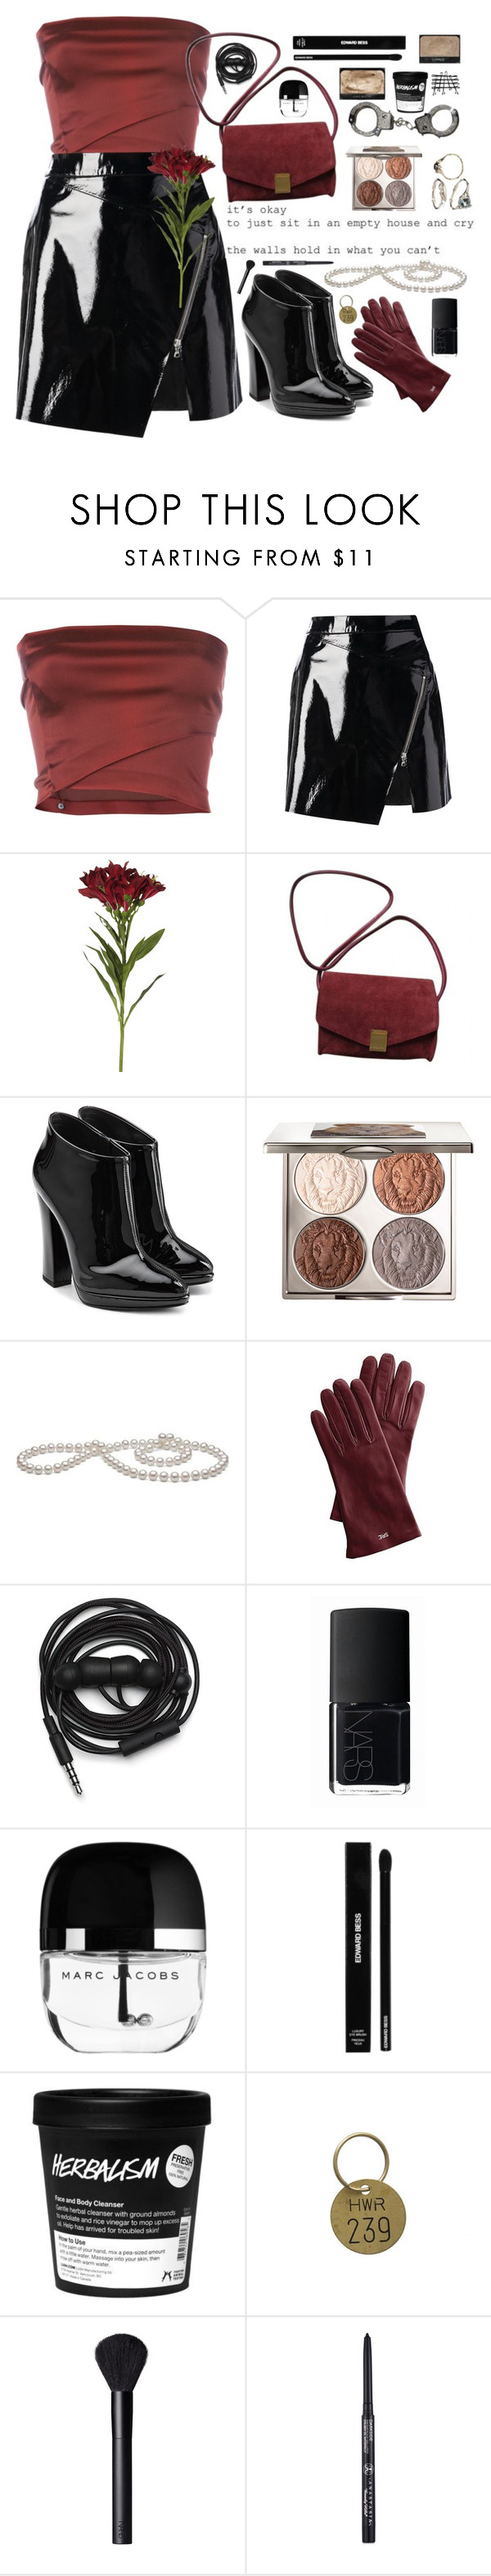 """""""Leather blood"""" by ingridballo ❤ liked on Polyvore featuring Romeo Gigli, Markus Lupfer, OKA, Zadig & Voltaire, Giuseppe Zanotti, Chantecaille, Mark & Graham, Urbanears, NARS Cosmetics and Edward Bess"""